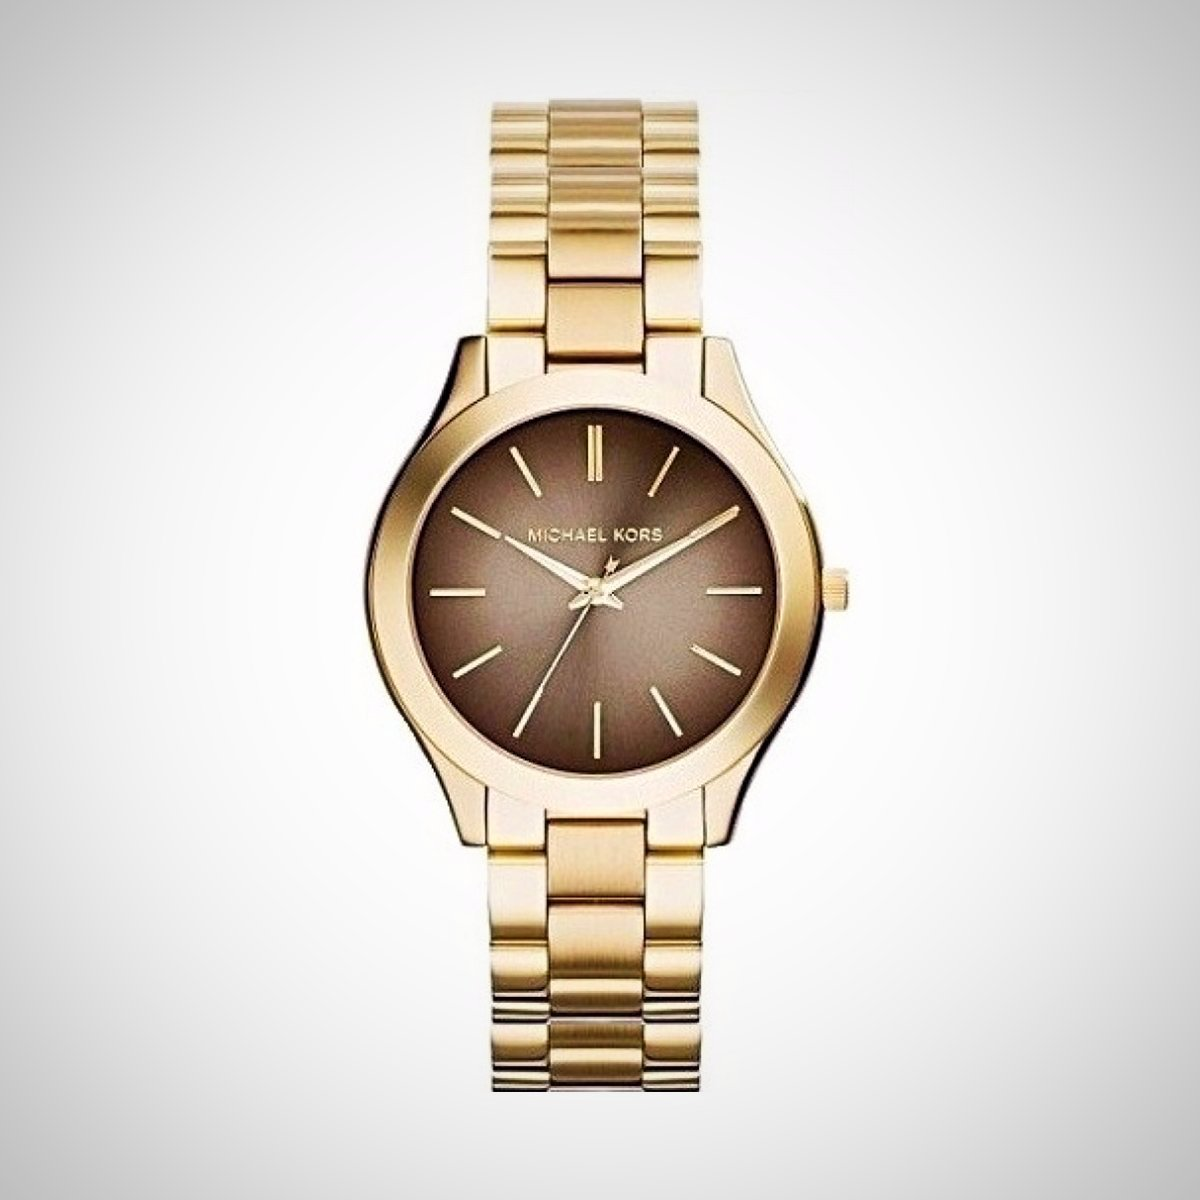 Michael Kors MK3381 Ladies' Gold Stainless Steel Quartz Watch